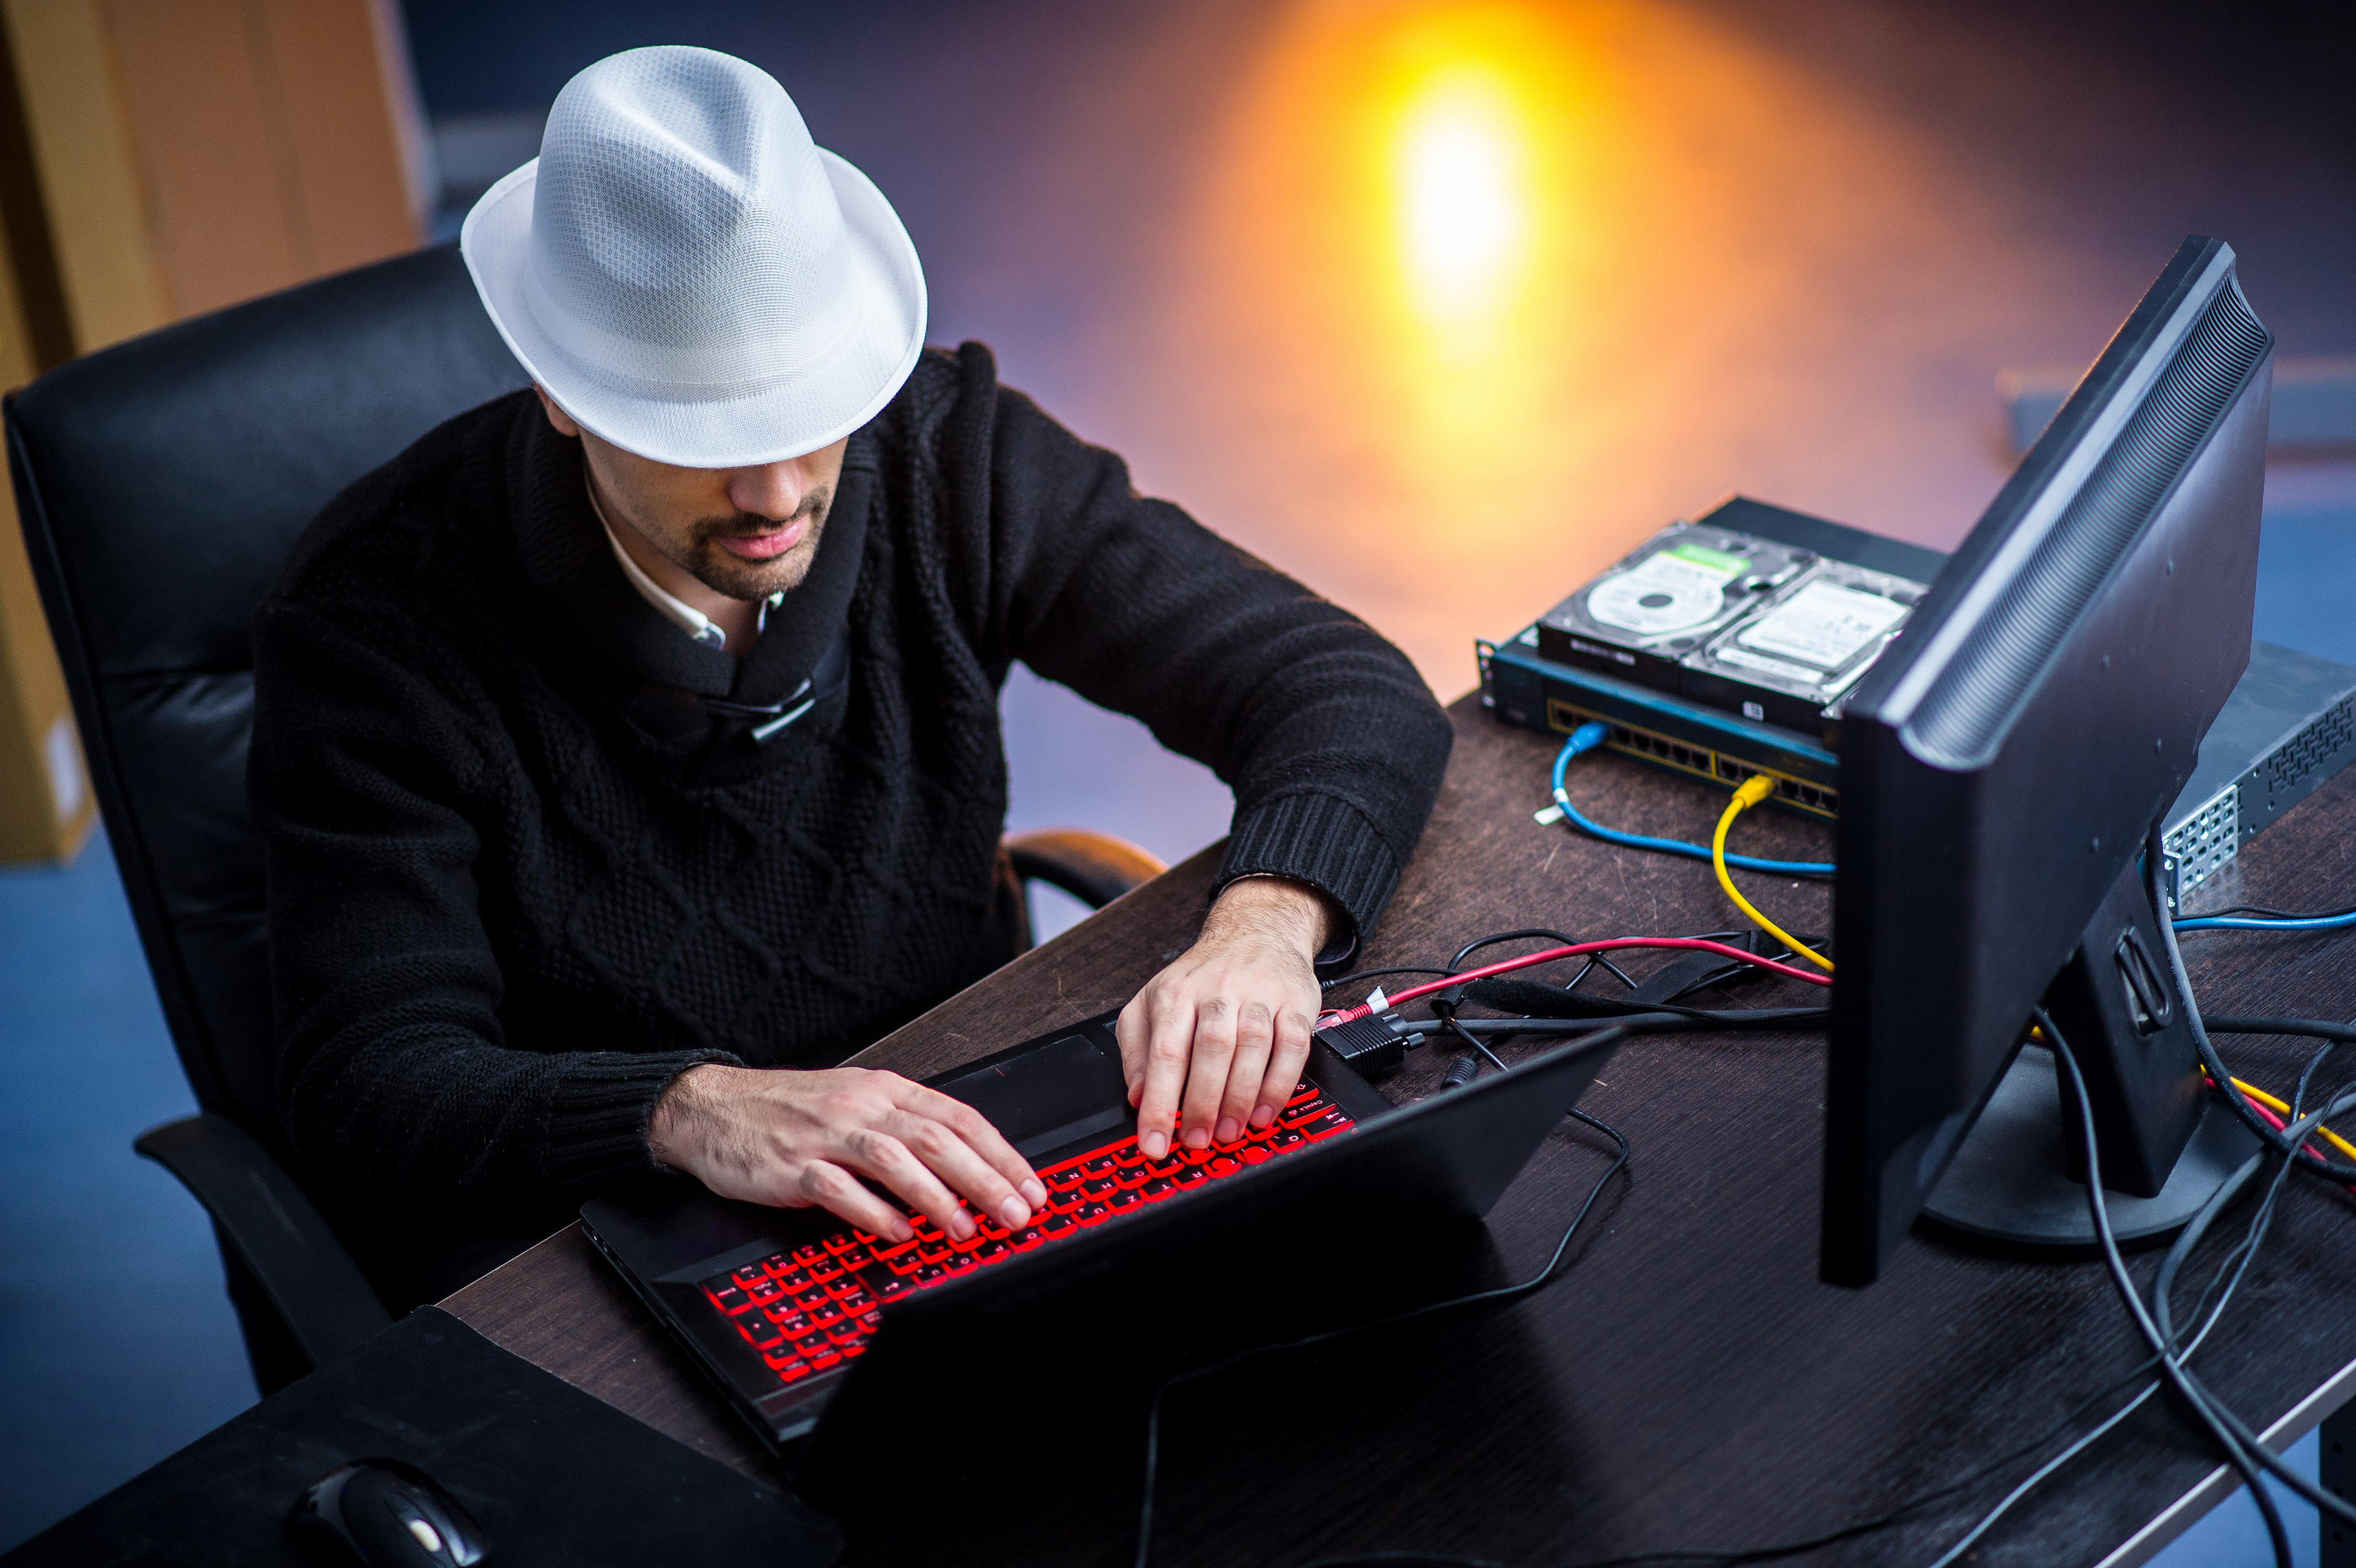 'White hat' hackers use their invasive skills to protect, not destroy